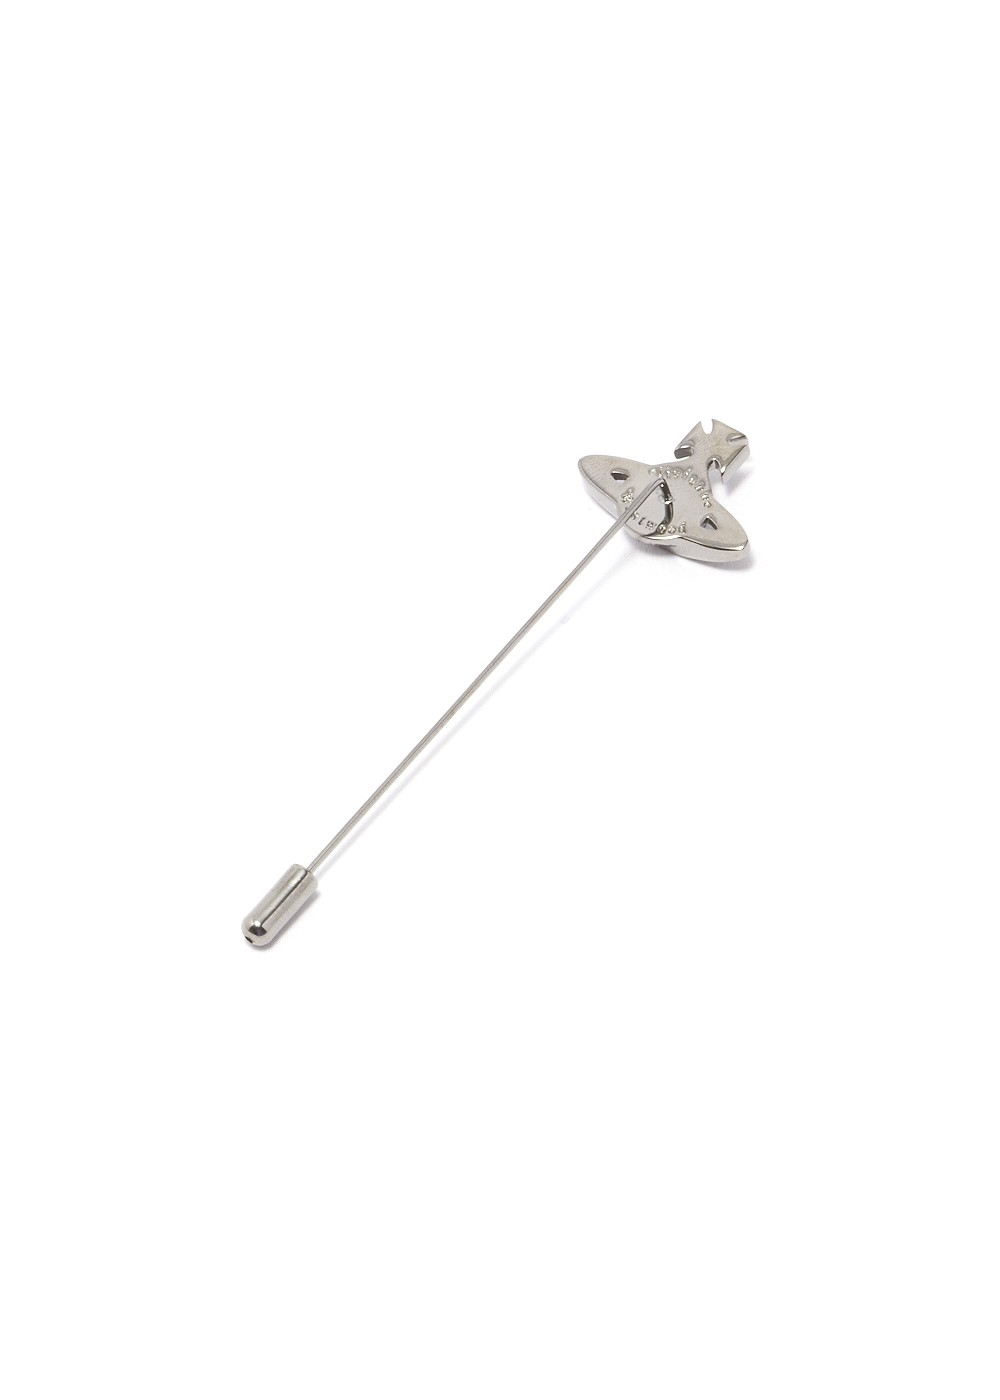 【最大64%OFF】MAN JACK TIE PIN|SILVER|その他小物|Vivienne Westwood Accessory